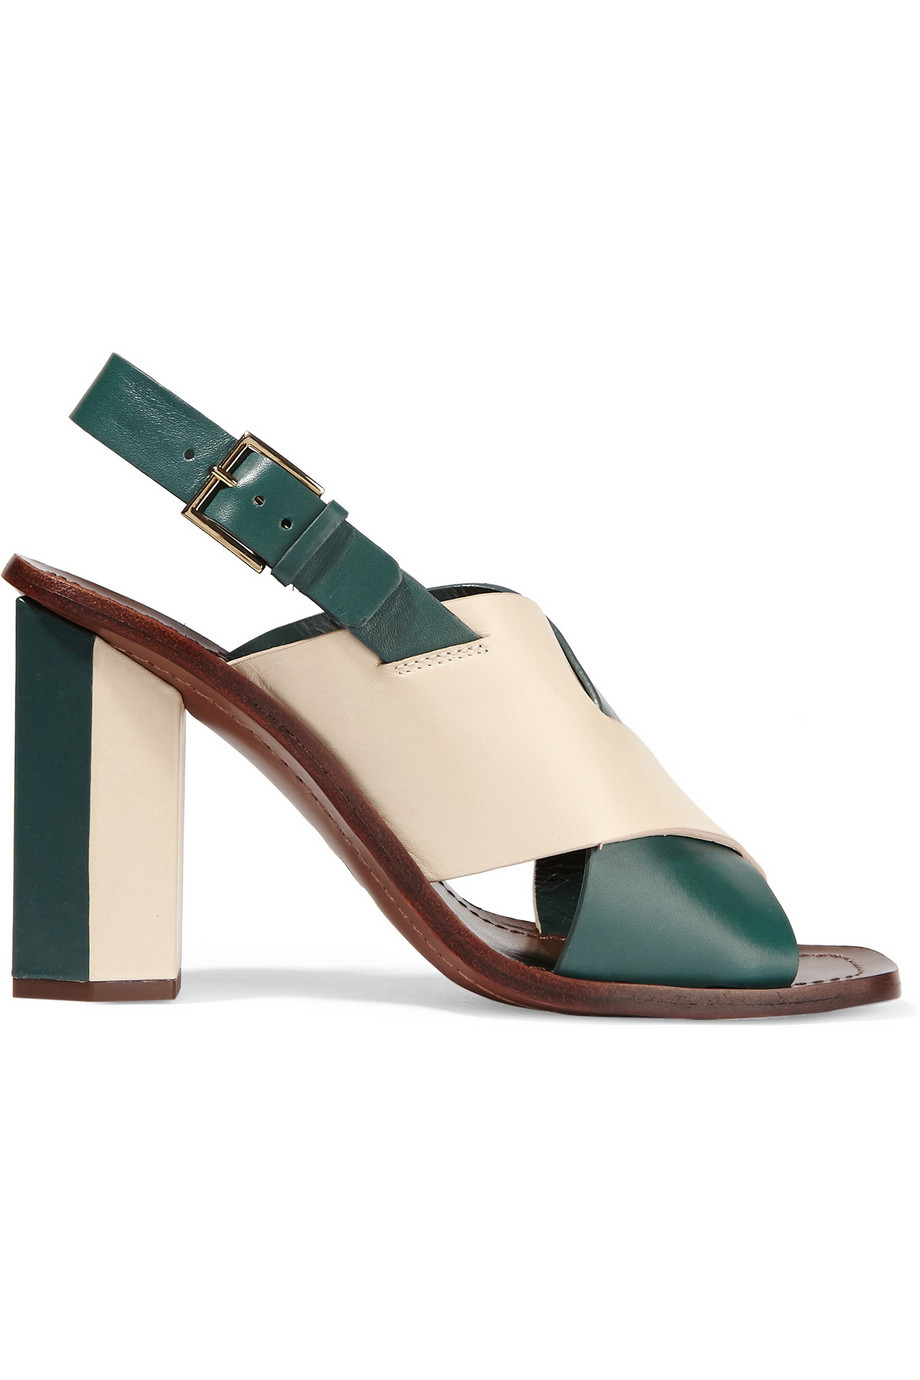 Bleecker Two Tone Leather Sandals Emerald - secondary colour: ivory/cream; predominant colour: emerald green; occasions: evening; material: leather; heel height: high; ankle detail: ankle strap; heel: block; toe: open toe/peeptoe; style: strappy; finish: plain; pattern: colourblock; season: s/s 2016; wardrobe: event